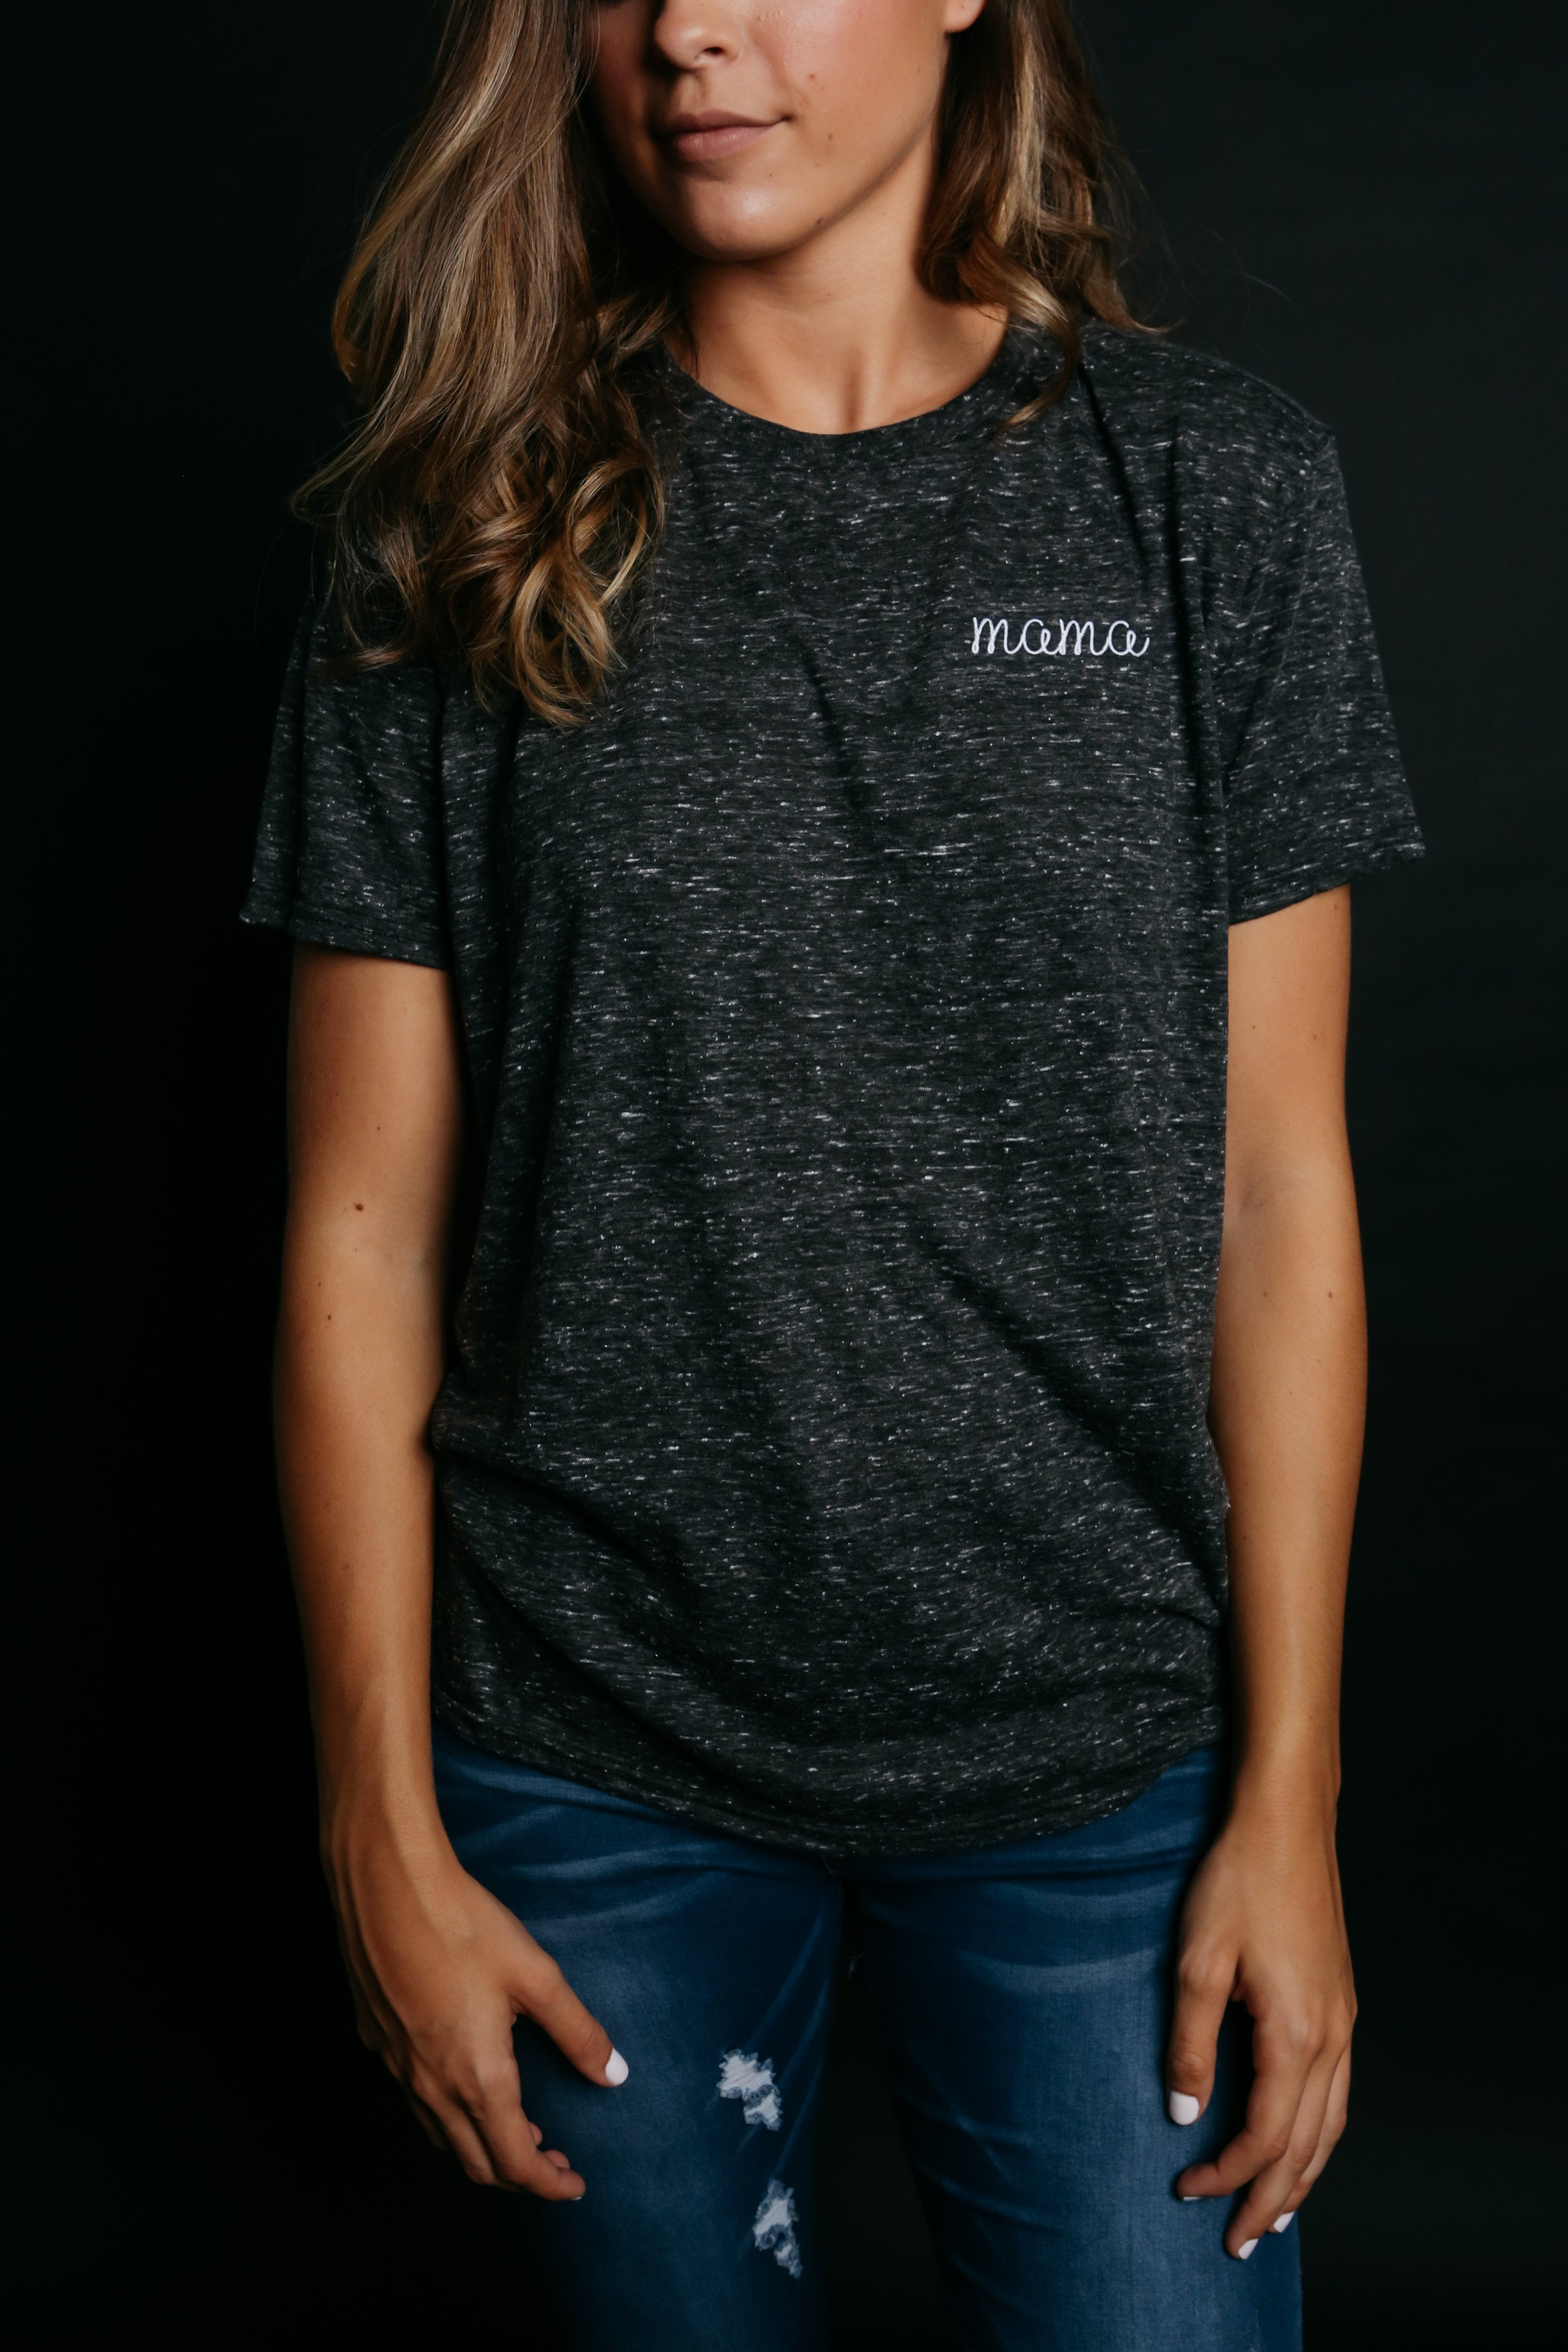 Mama Embroidered Tee - Charcoal